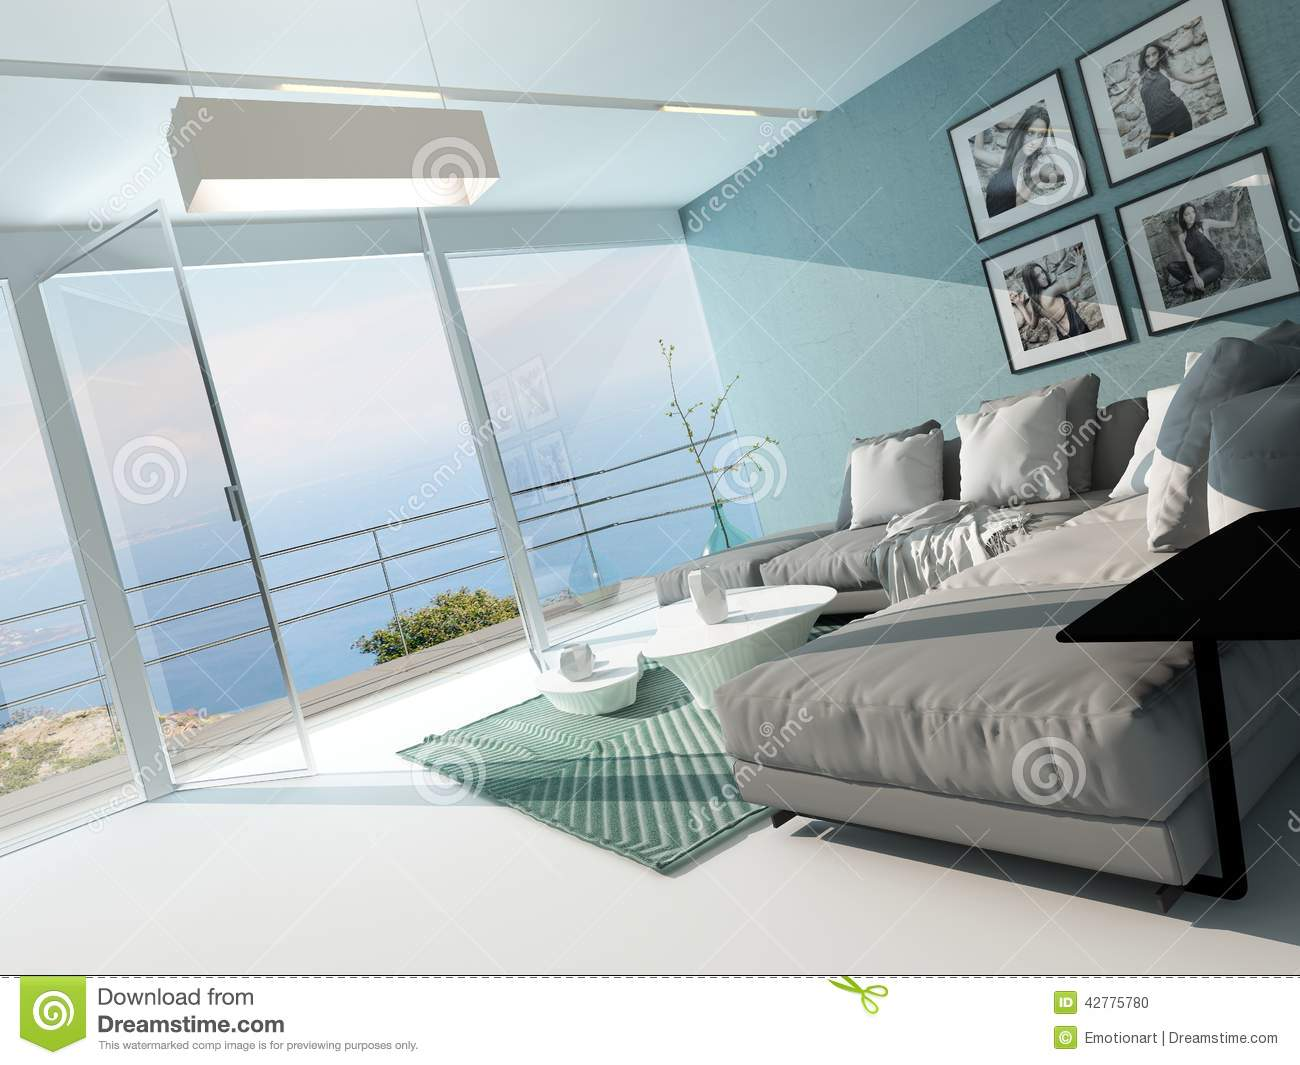 Salon de luxe d 39 appartement de bord de mer illustration - Decoration appartement bord de mer ...